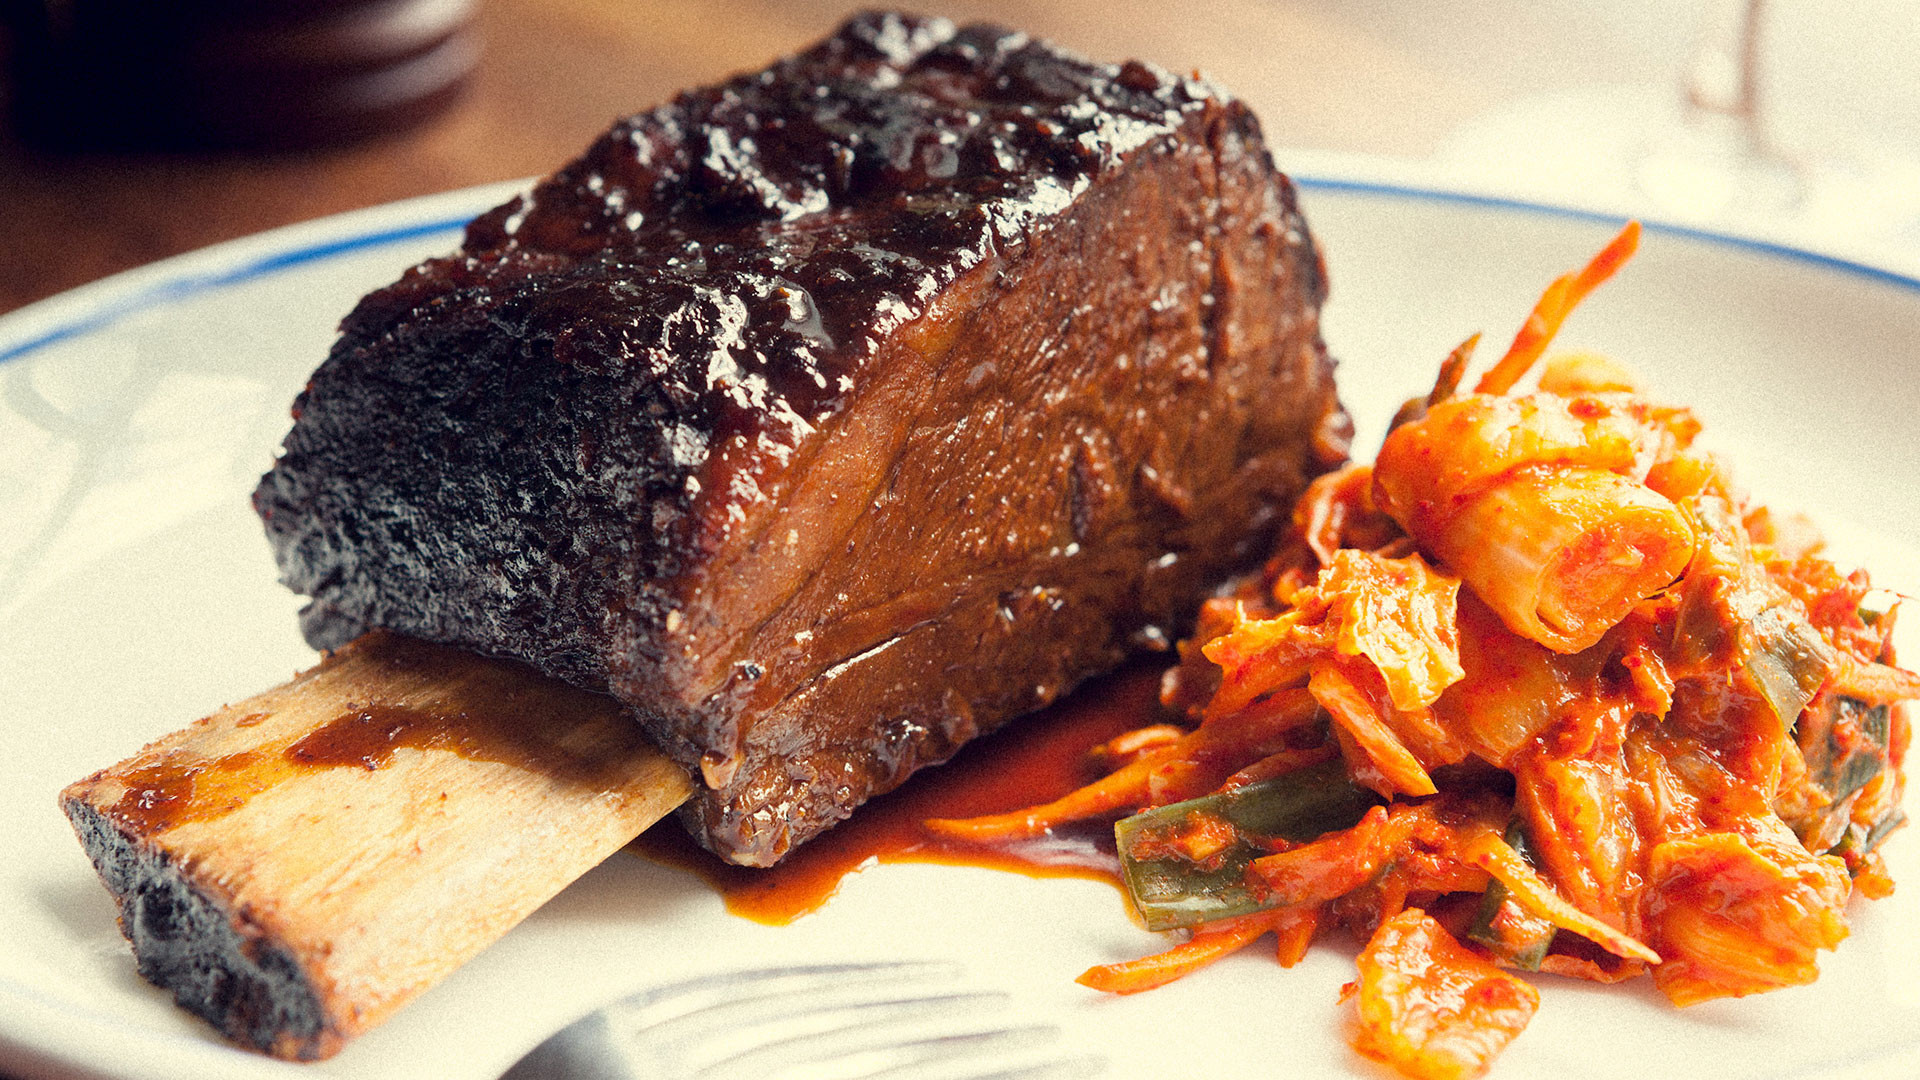 10-hour-cooked beef shortrib at Foxlow